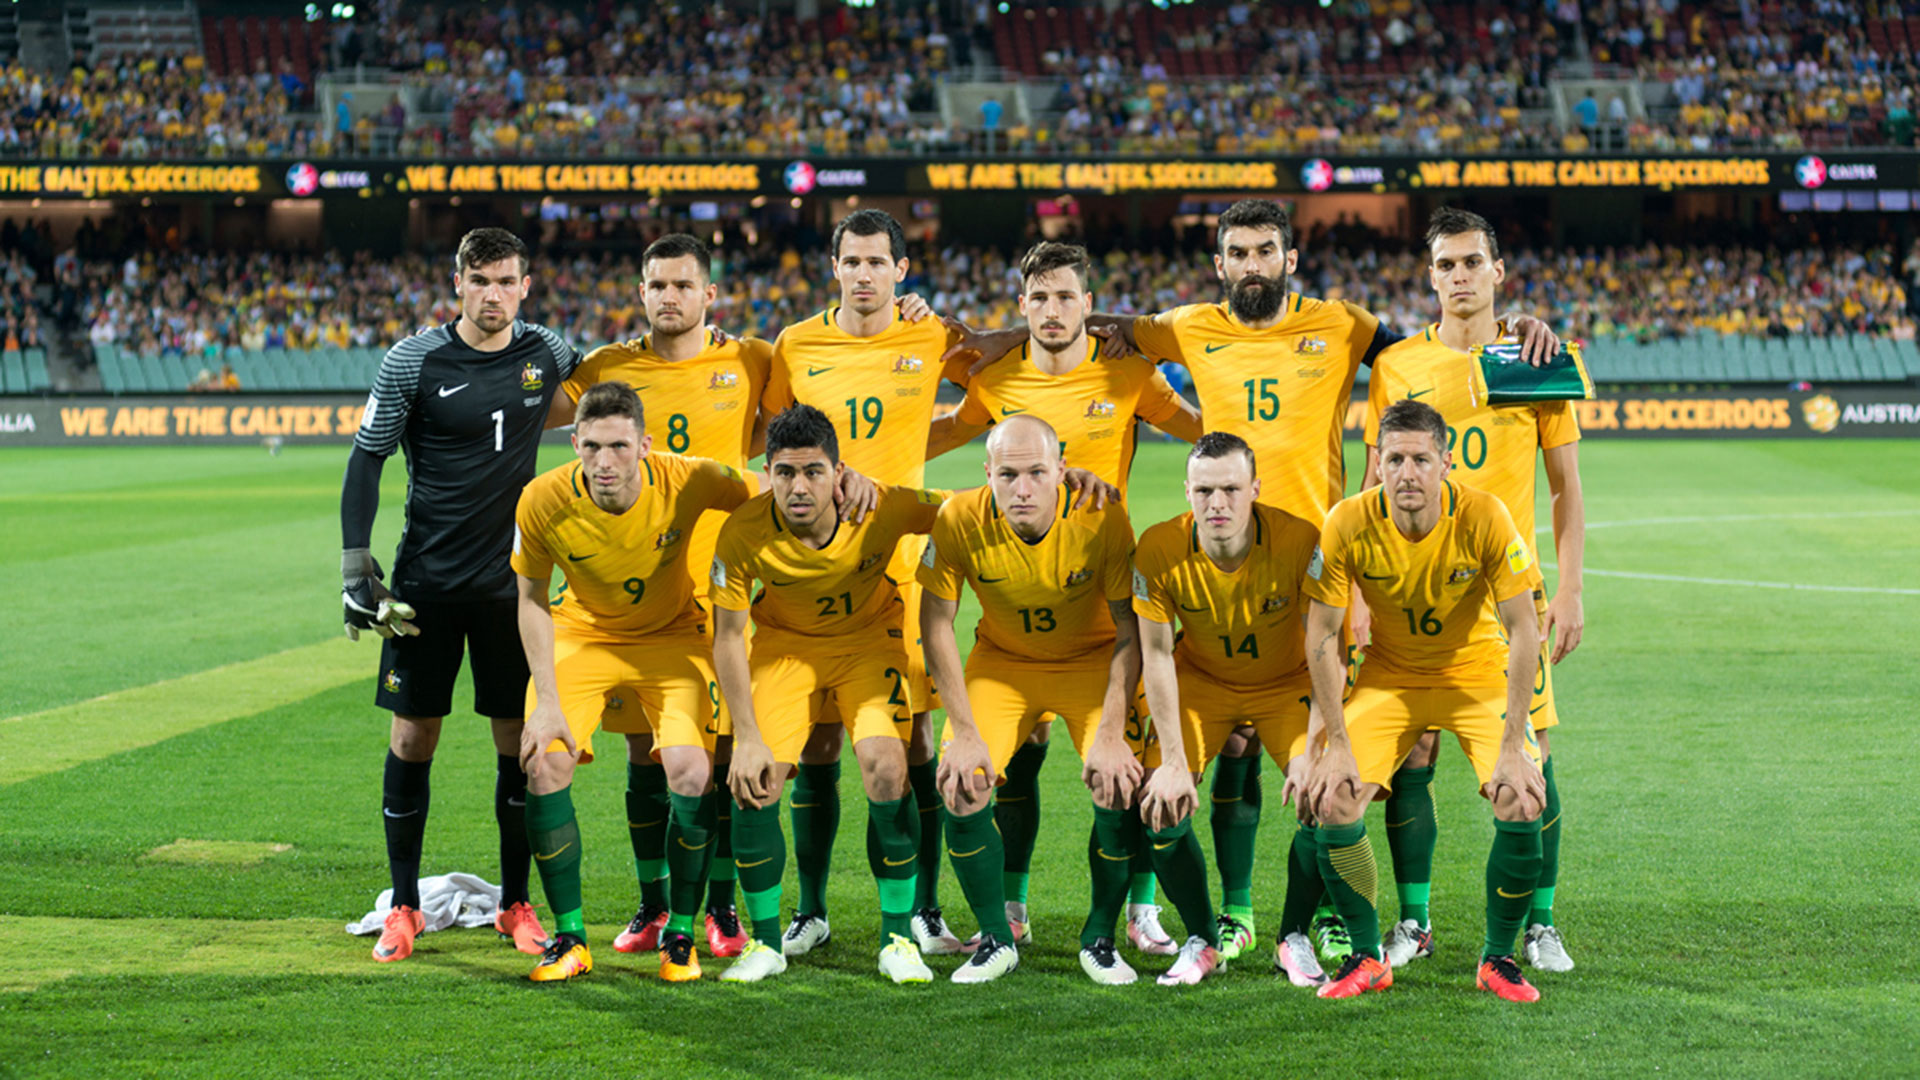 Socceroos at Adelaide Oval